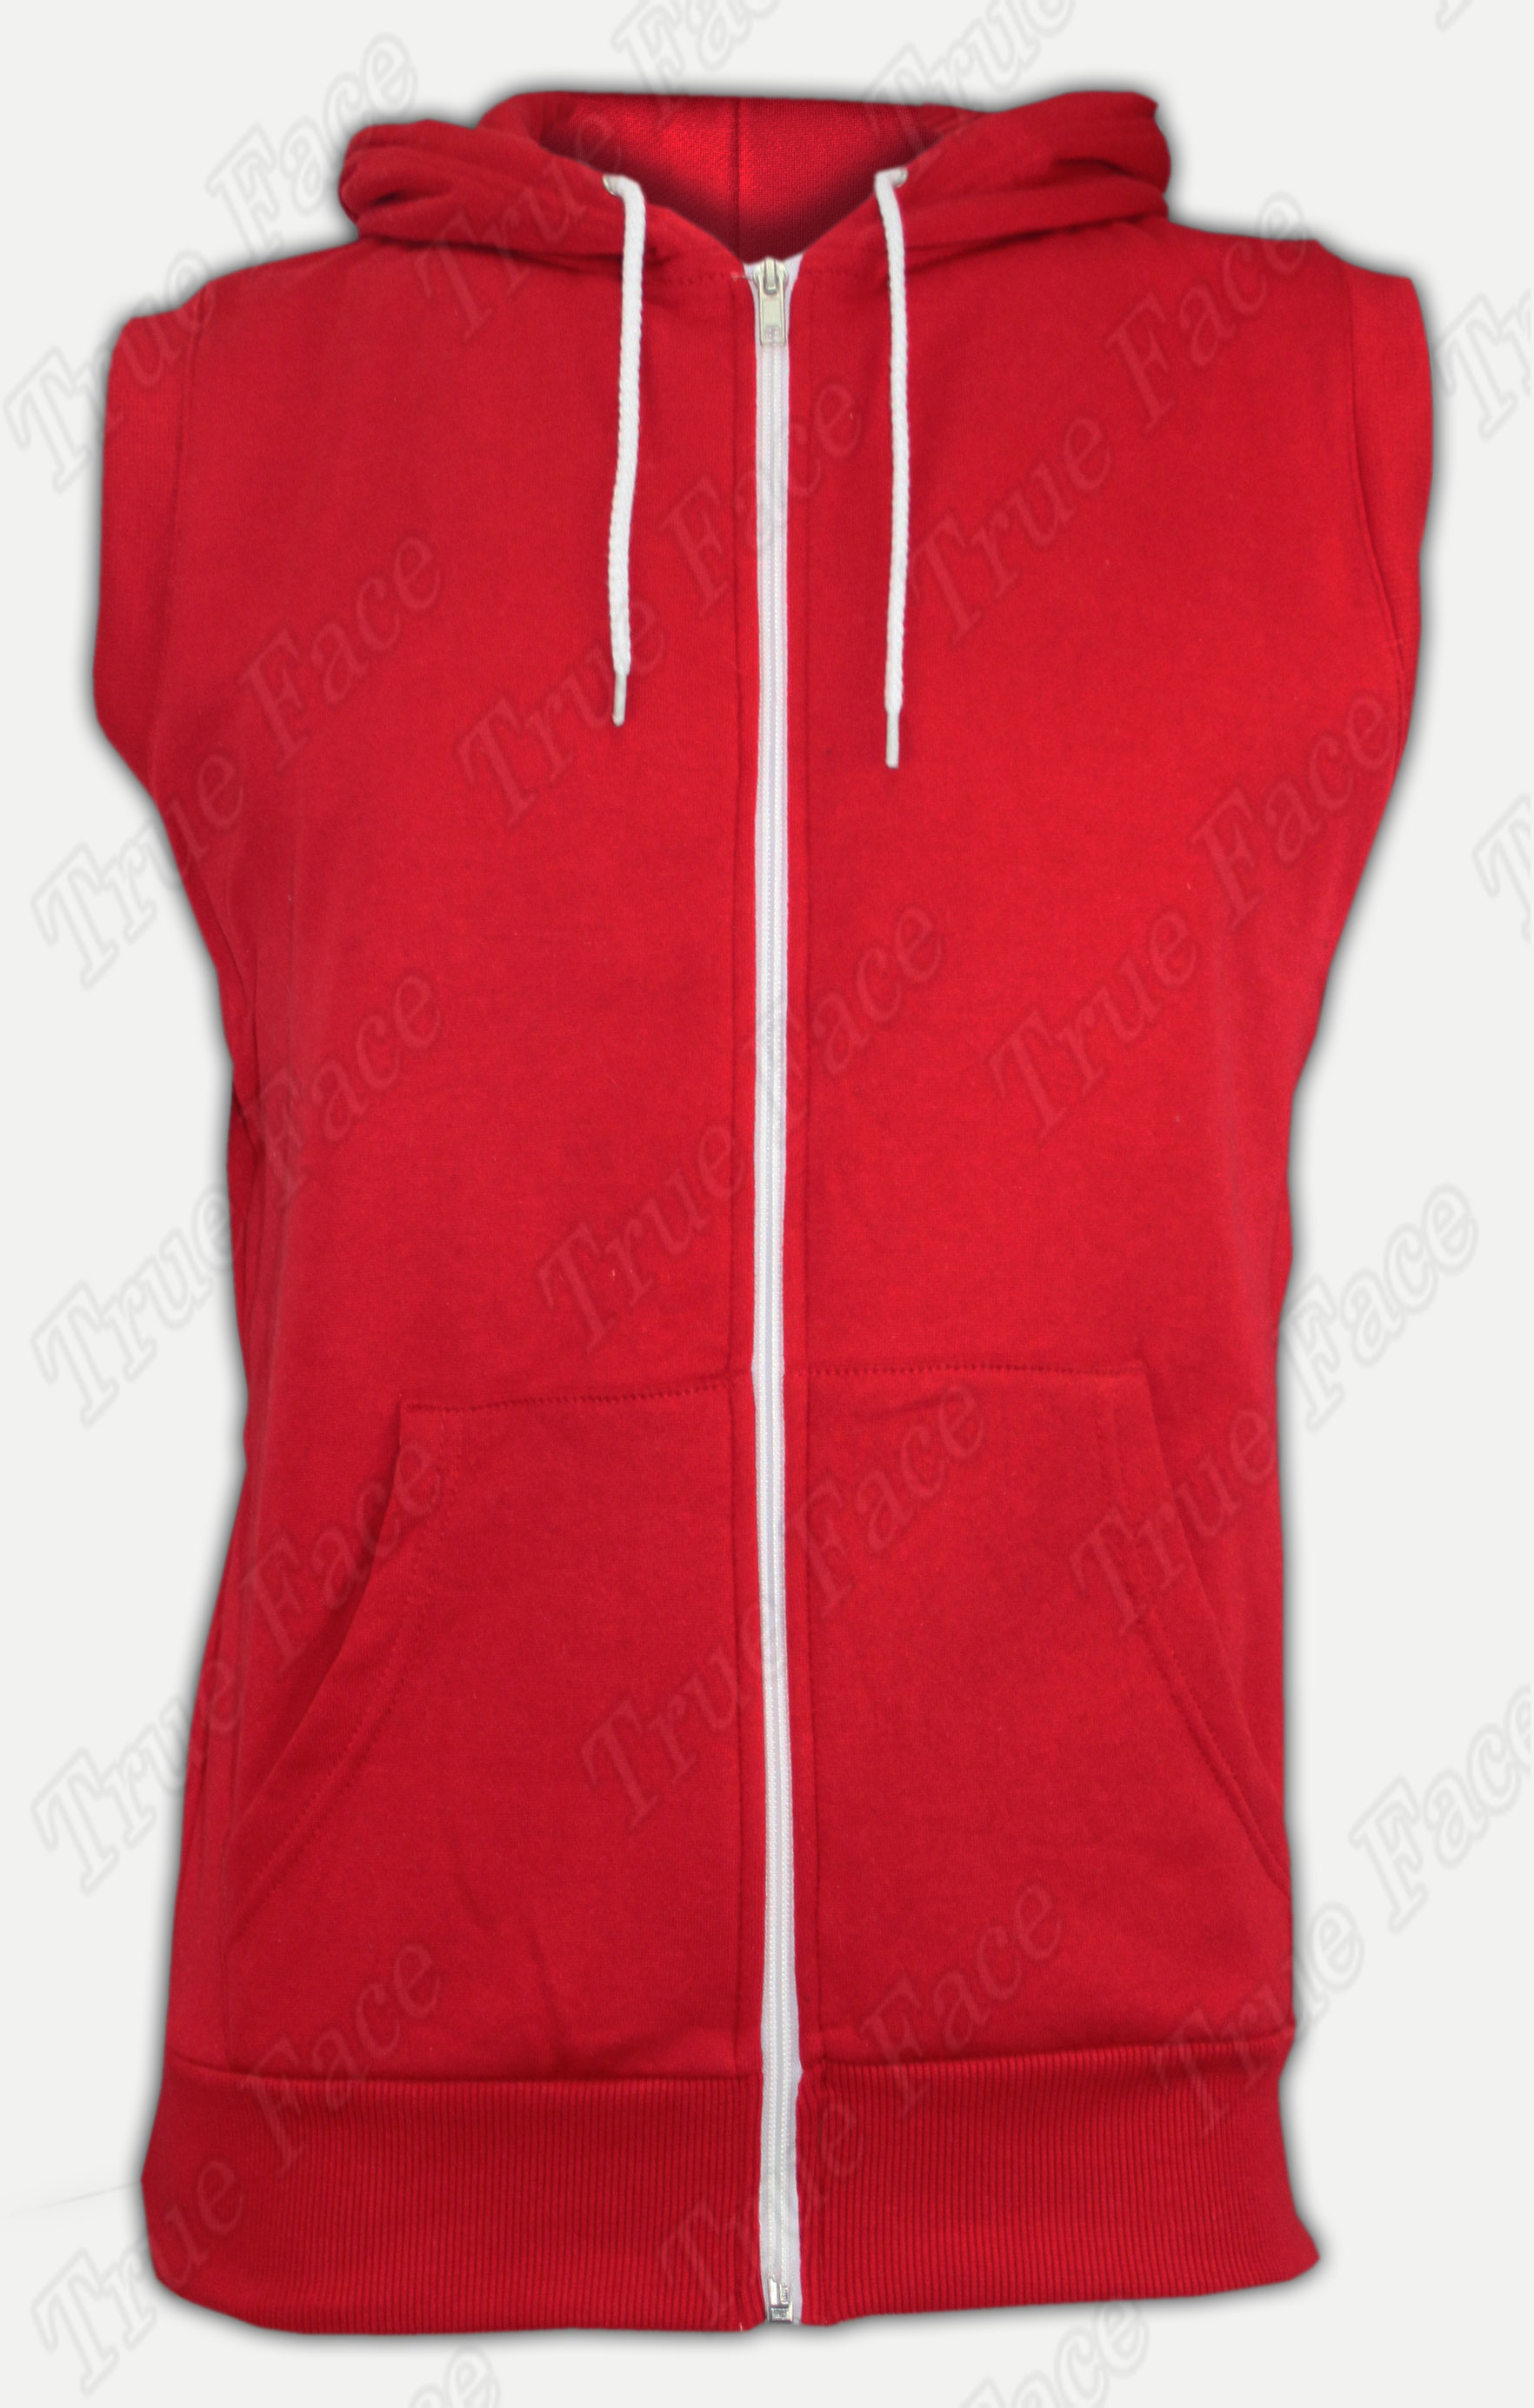 Mens-Soul-Star-Gilet-Sleeveless-Sweatshirt-Hoodie-Top-Jumper-Hooded